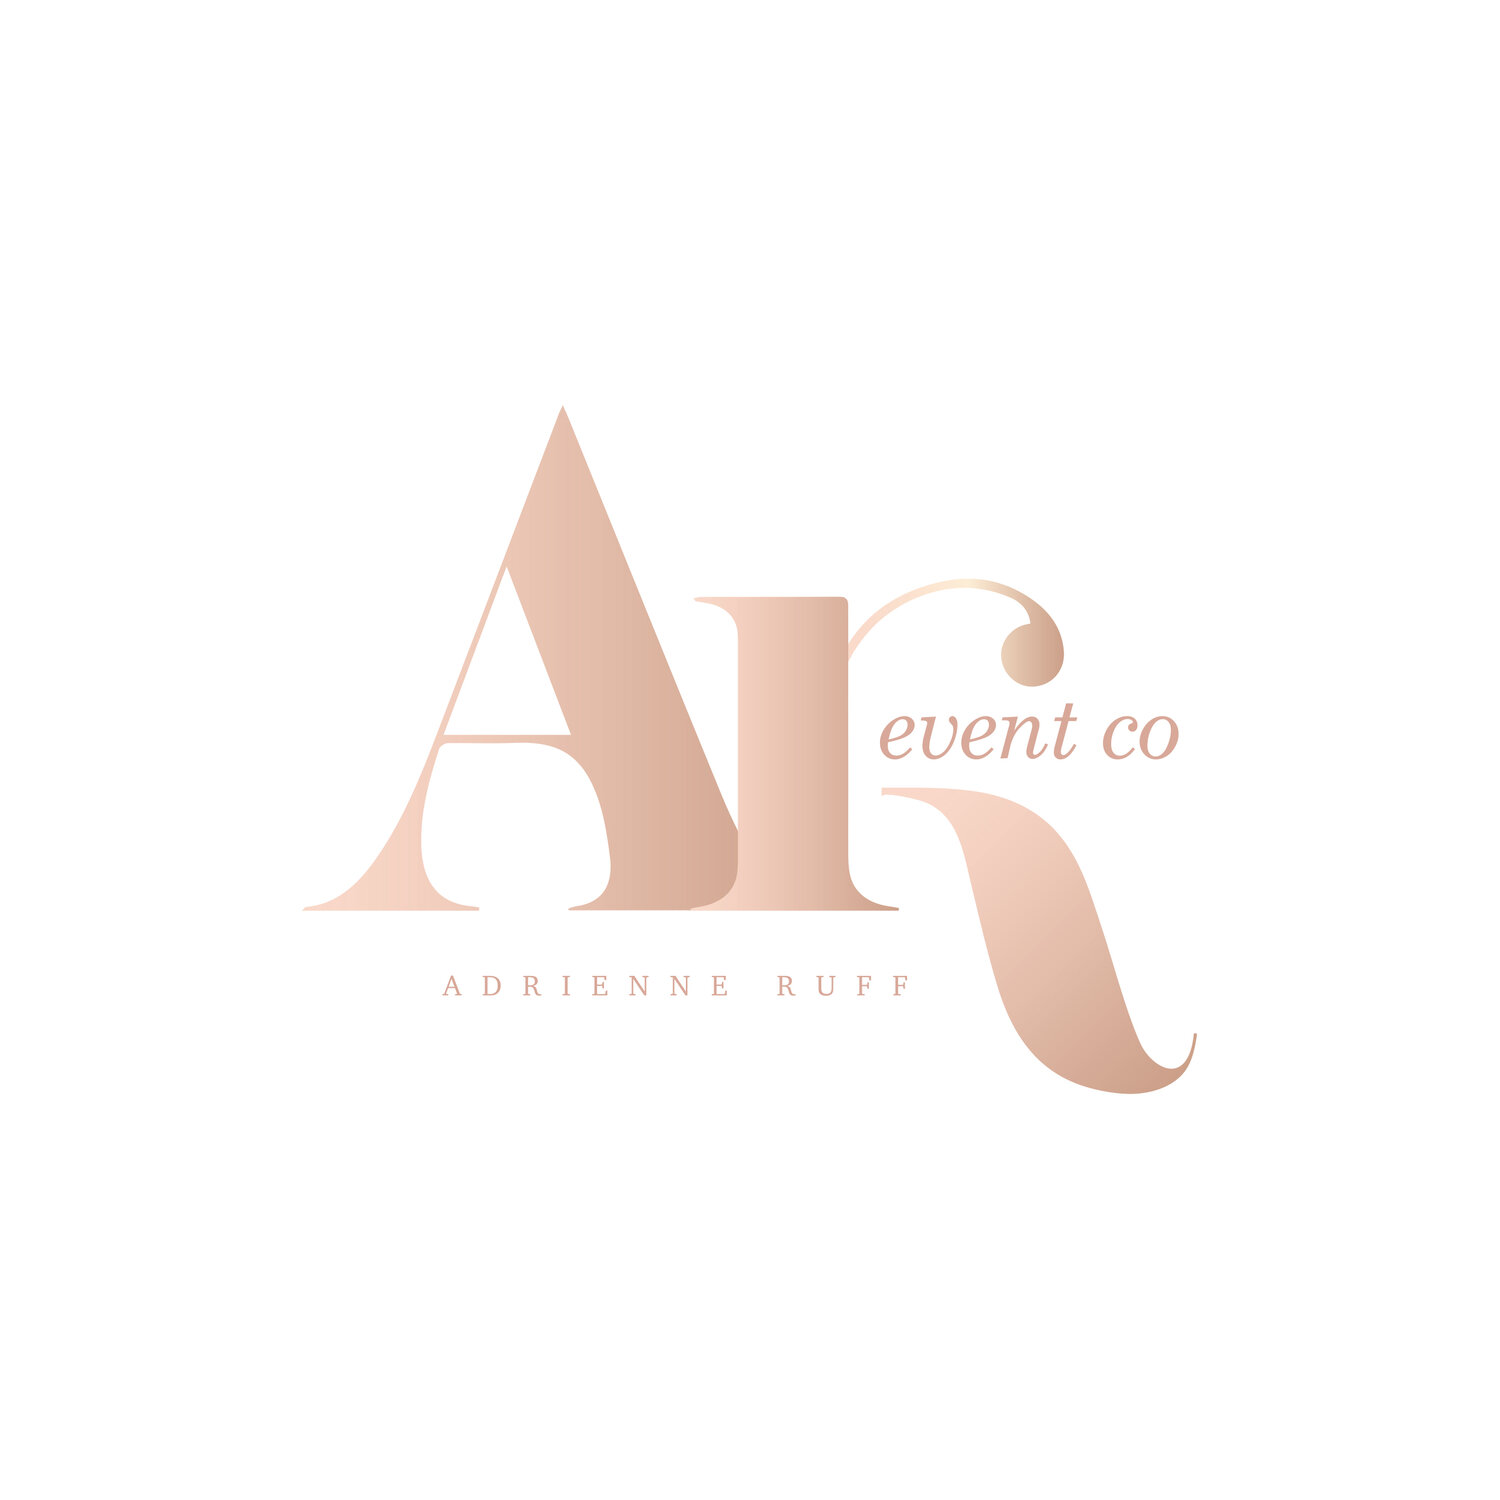 Adrienne Ruff Event Co. Ltd.